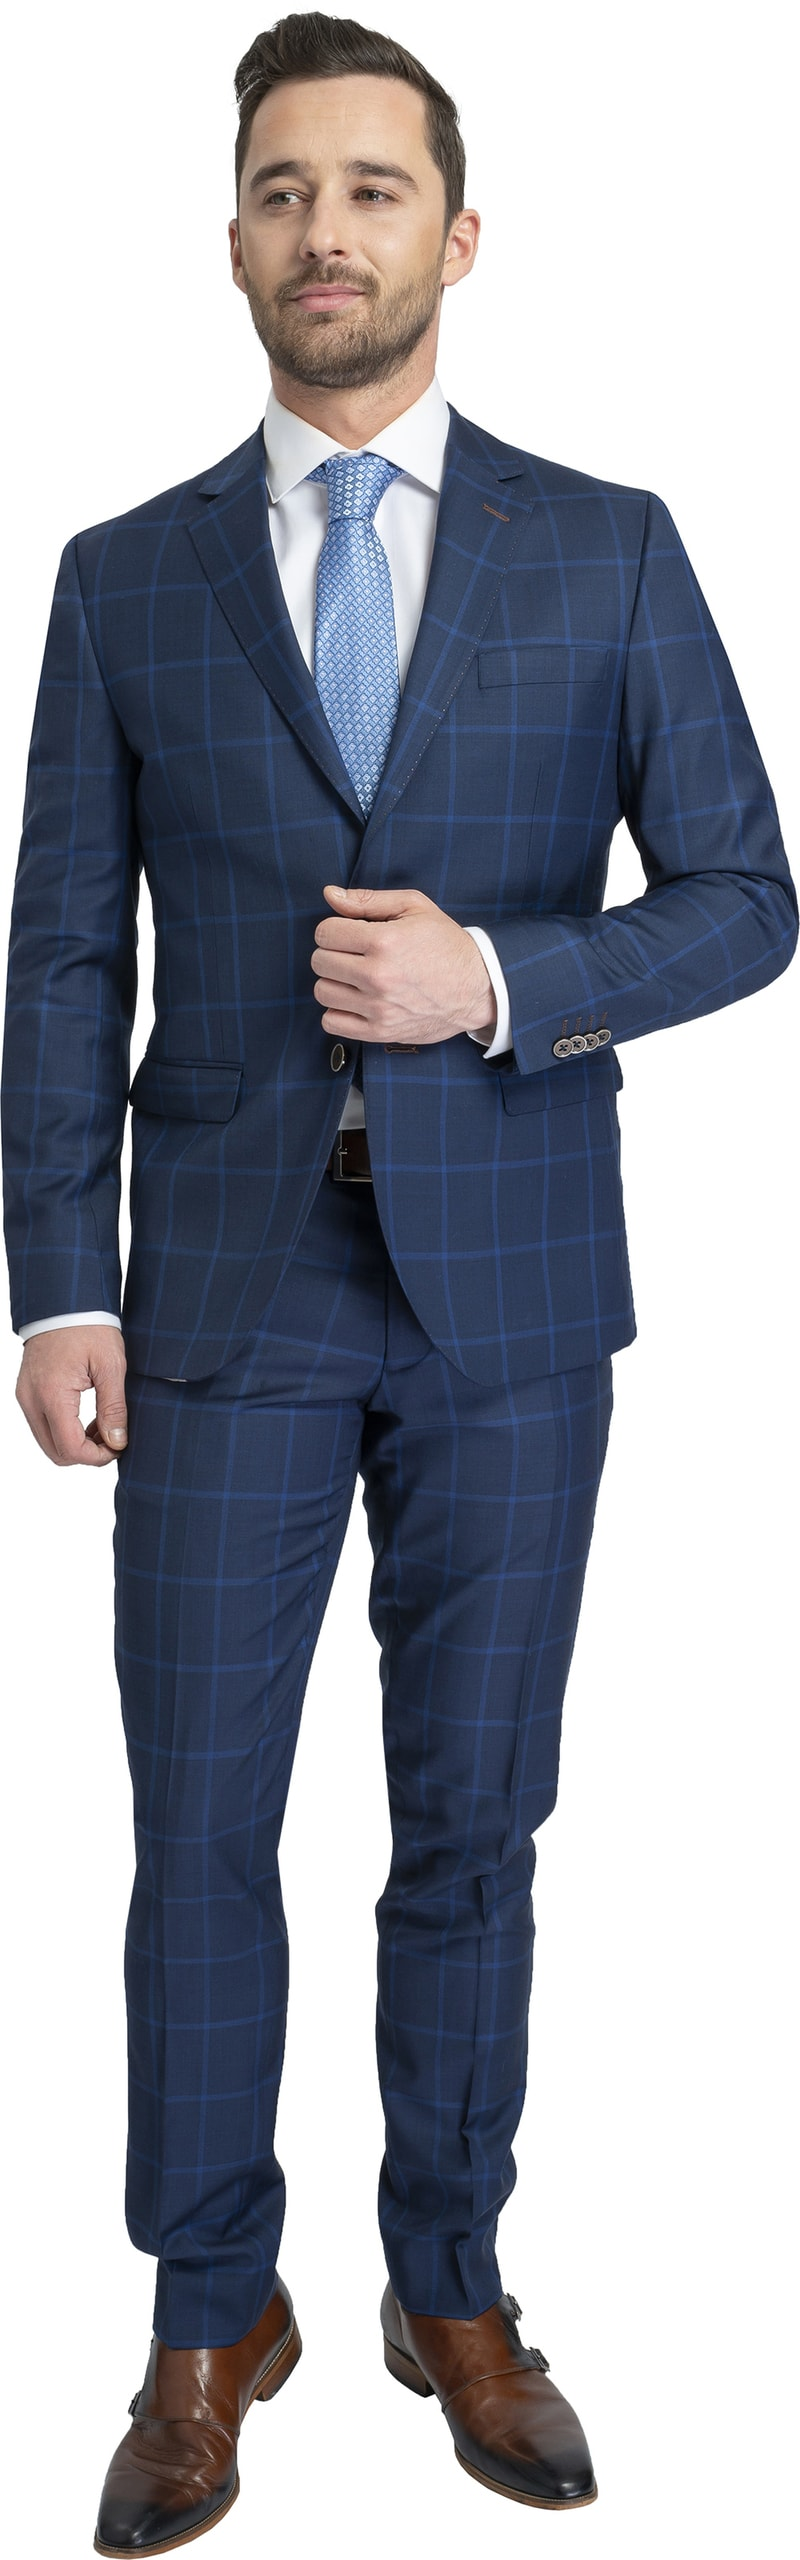 Suitable Suit Strato Levidi Lyon photo 0